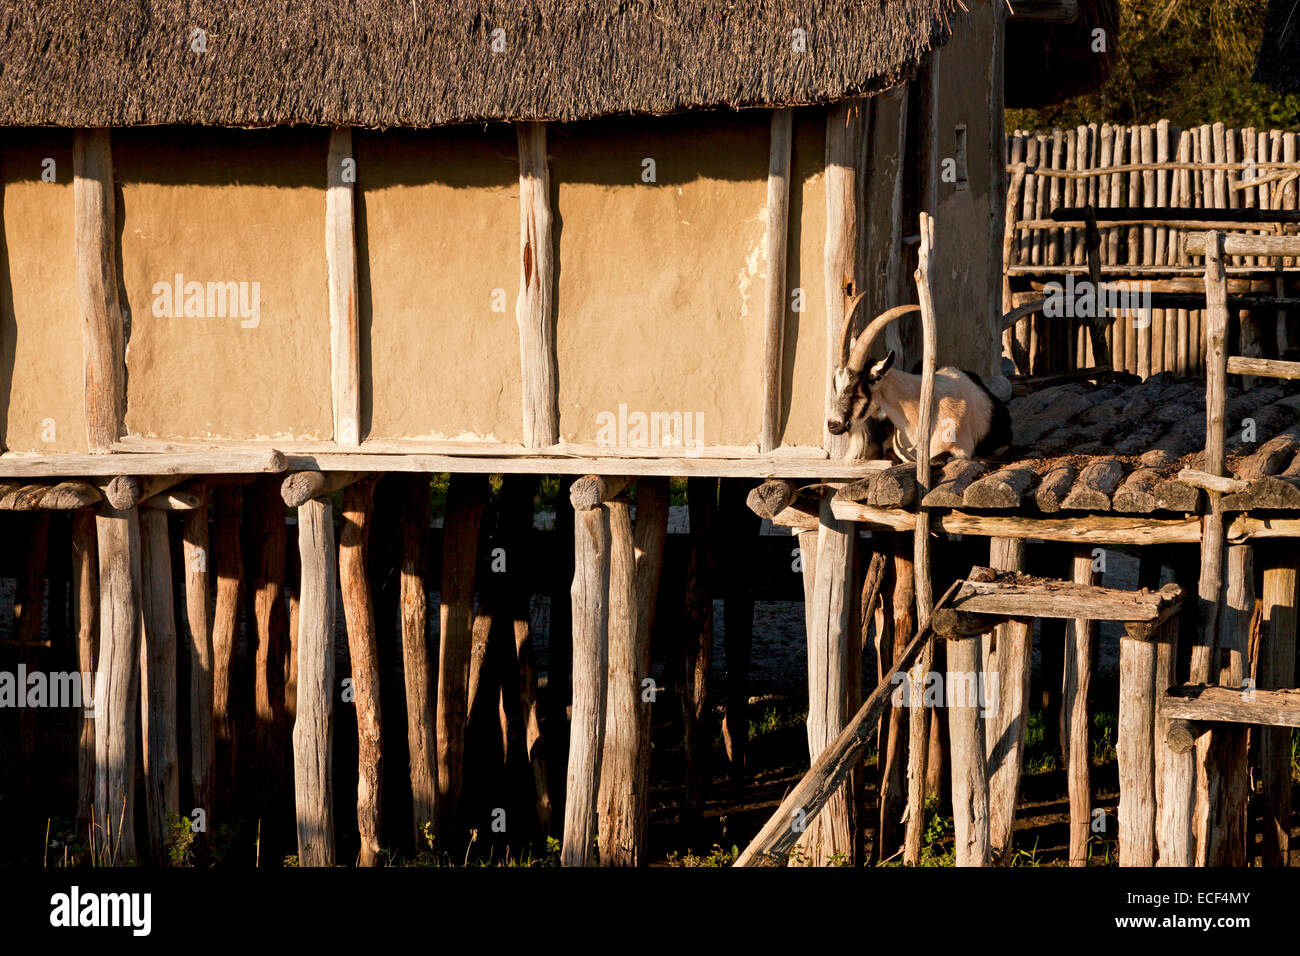 reconstructions pile dwellings at The Pfahlbauten open air museum in Unteruhldingen Lake Constance, Germany - Stock Image